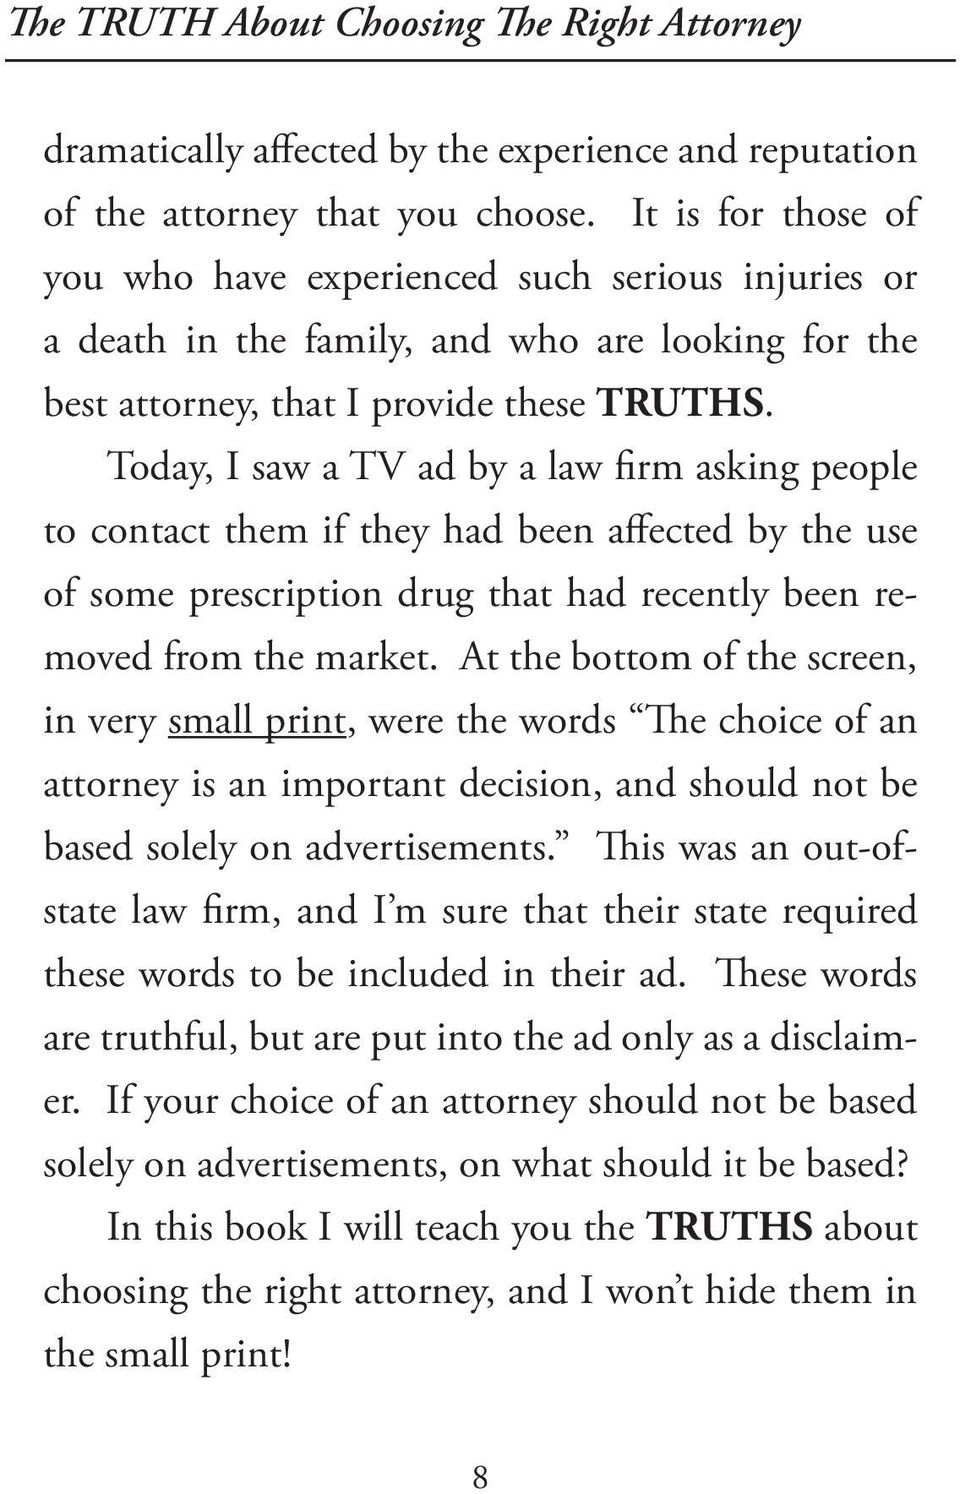 Today, I saw a TV ad by a law firm asking people to contact them if they had been affected by the use of some prescription drug that had recently been removed from the market.